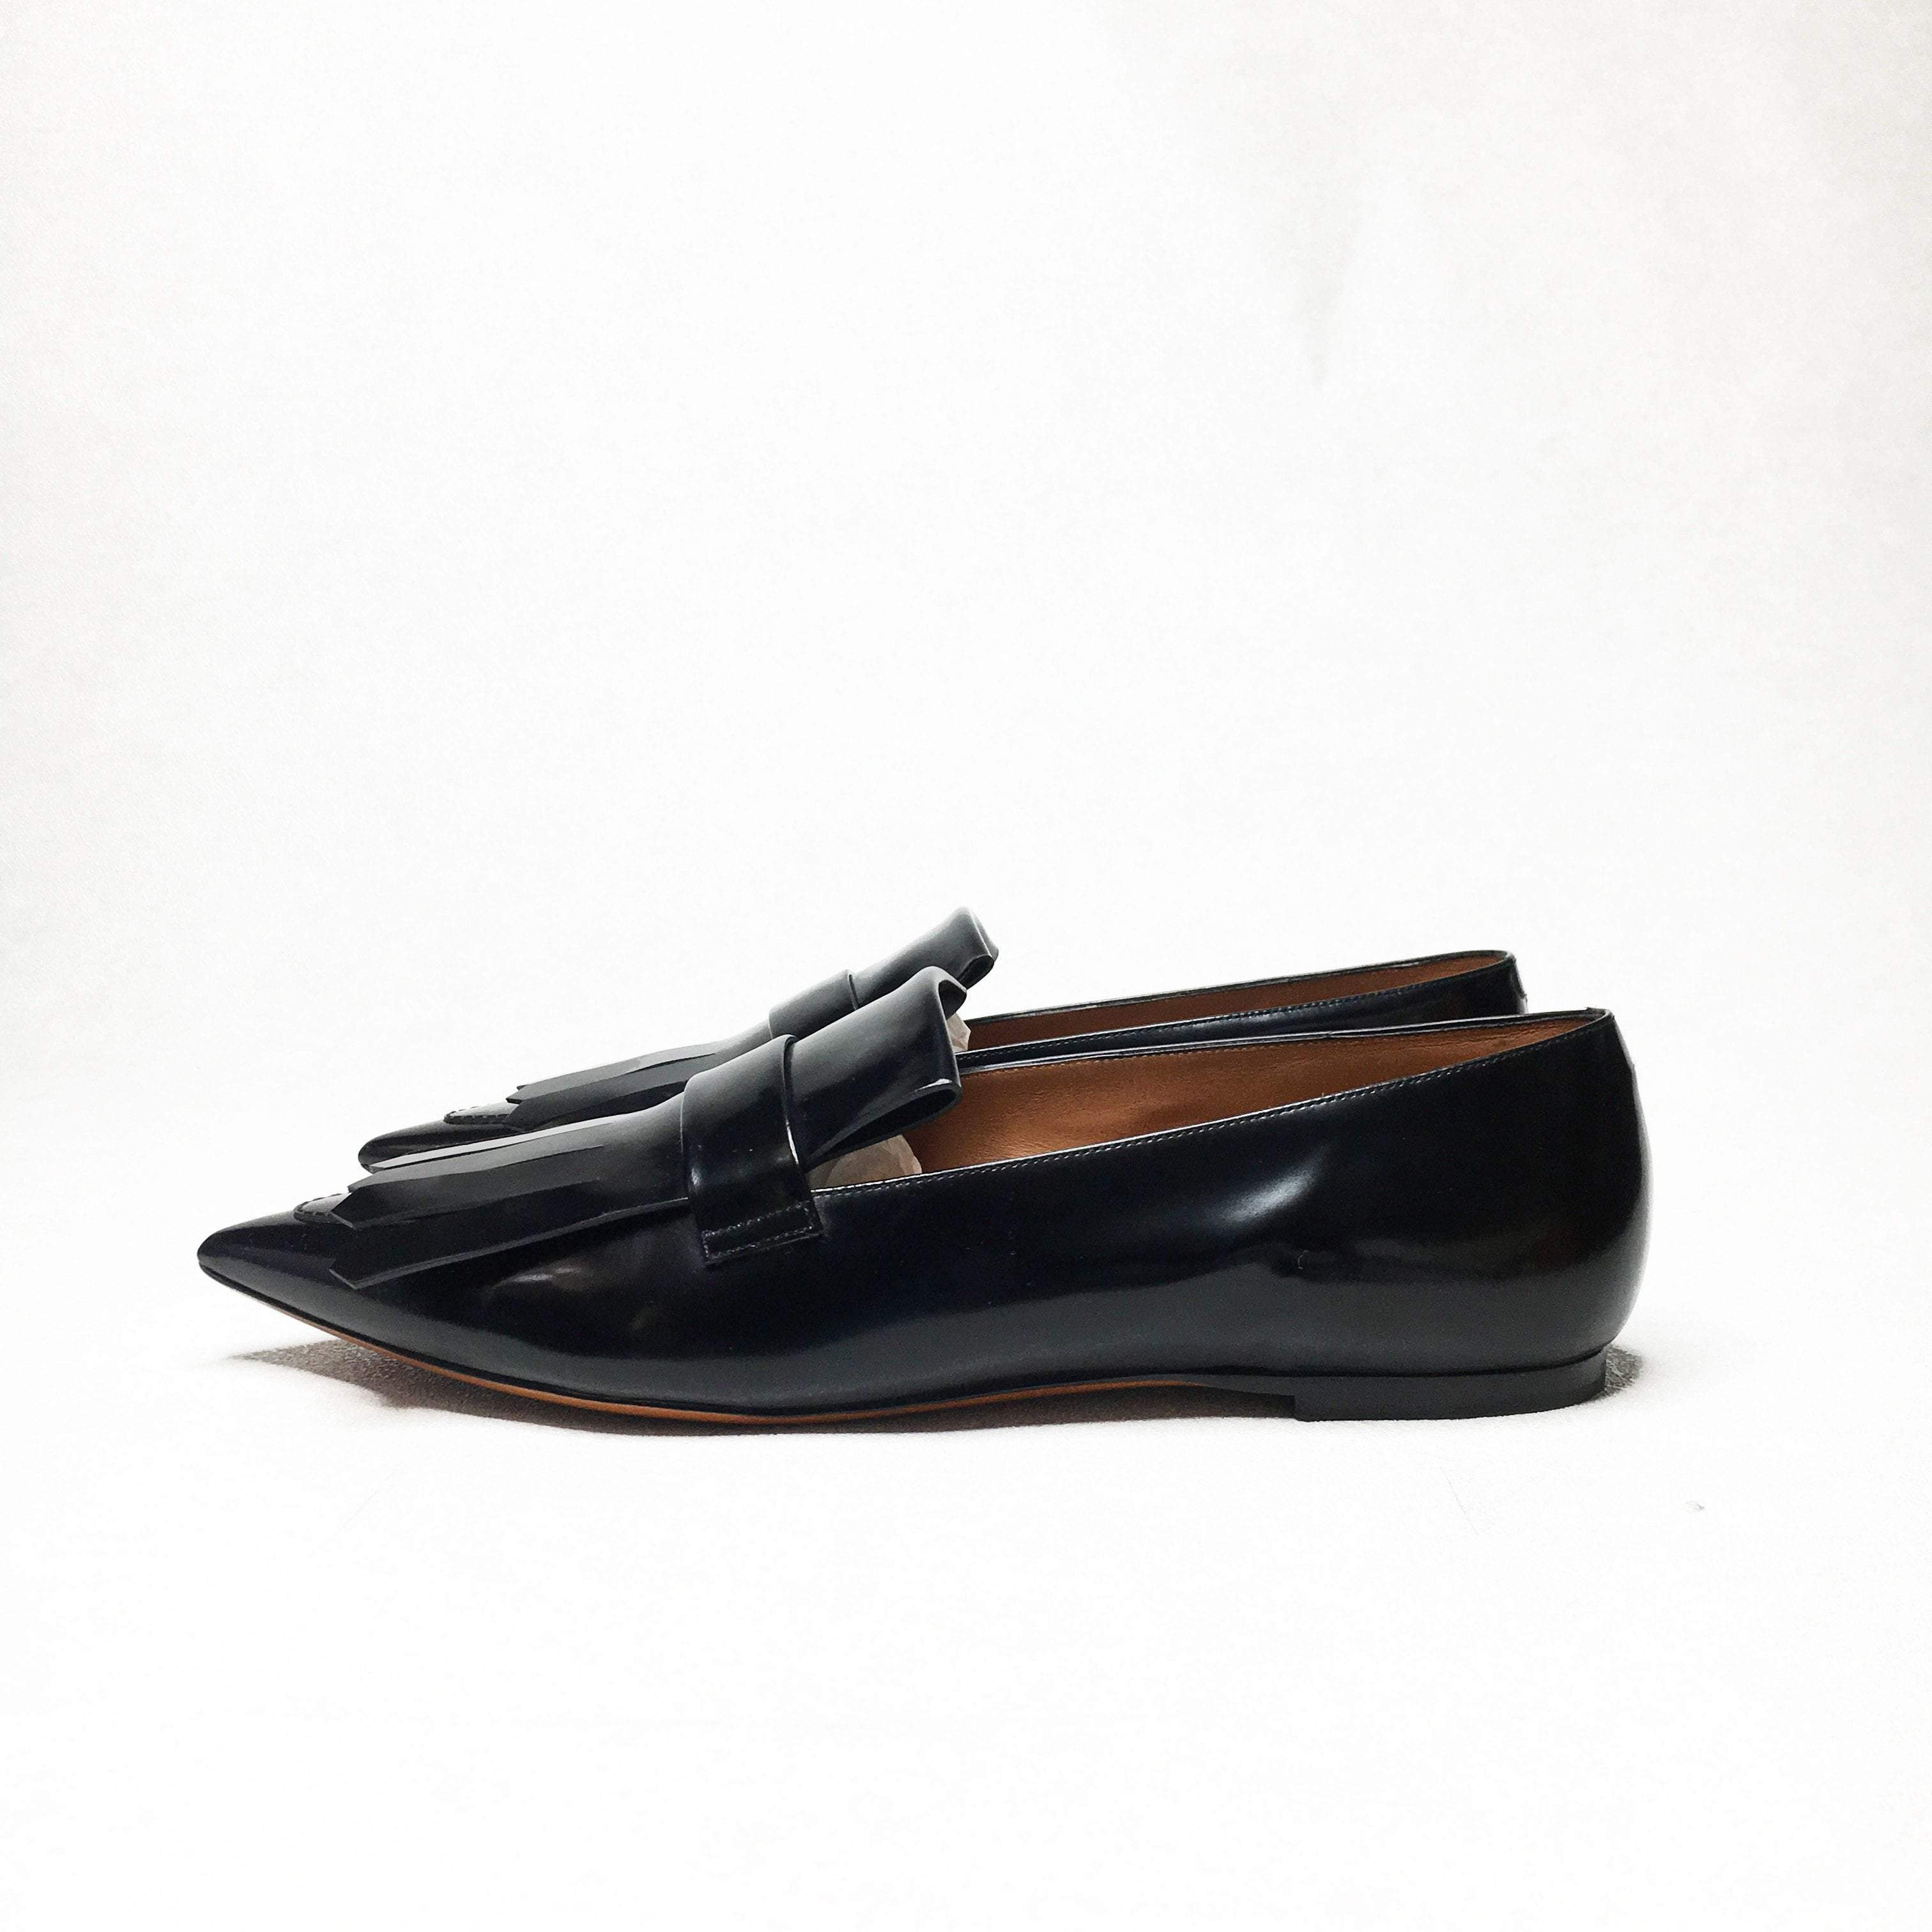 Celine Pointy Fringe Loafer in Black Spazzolato Calfskin